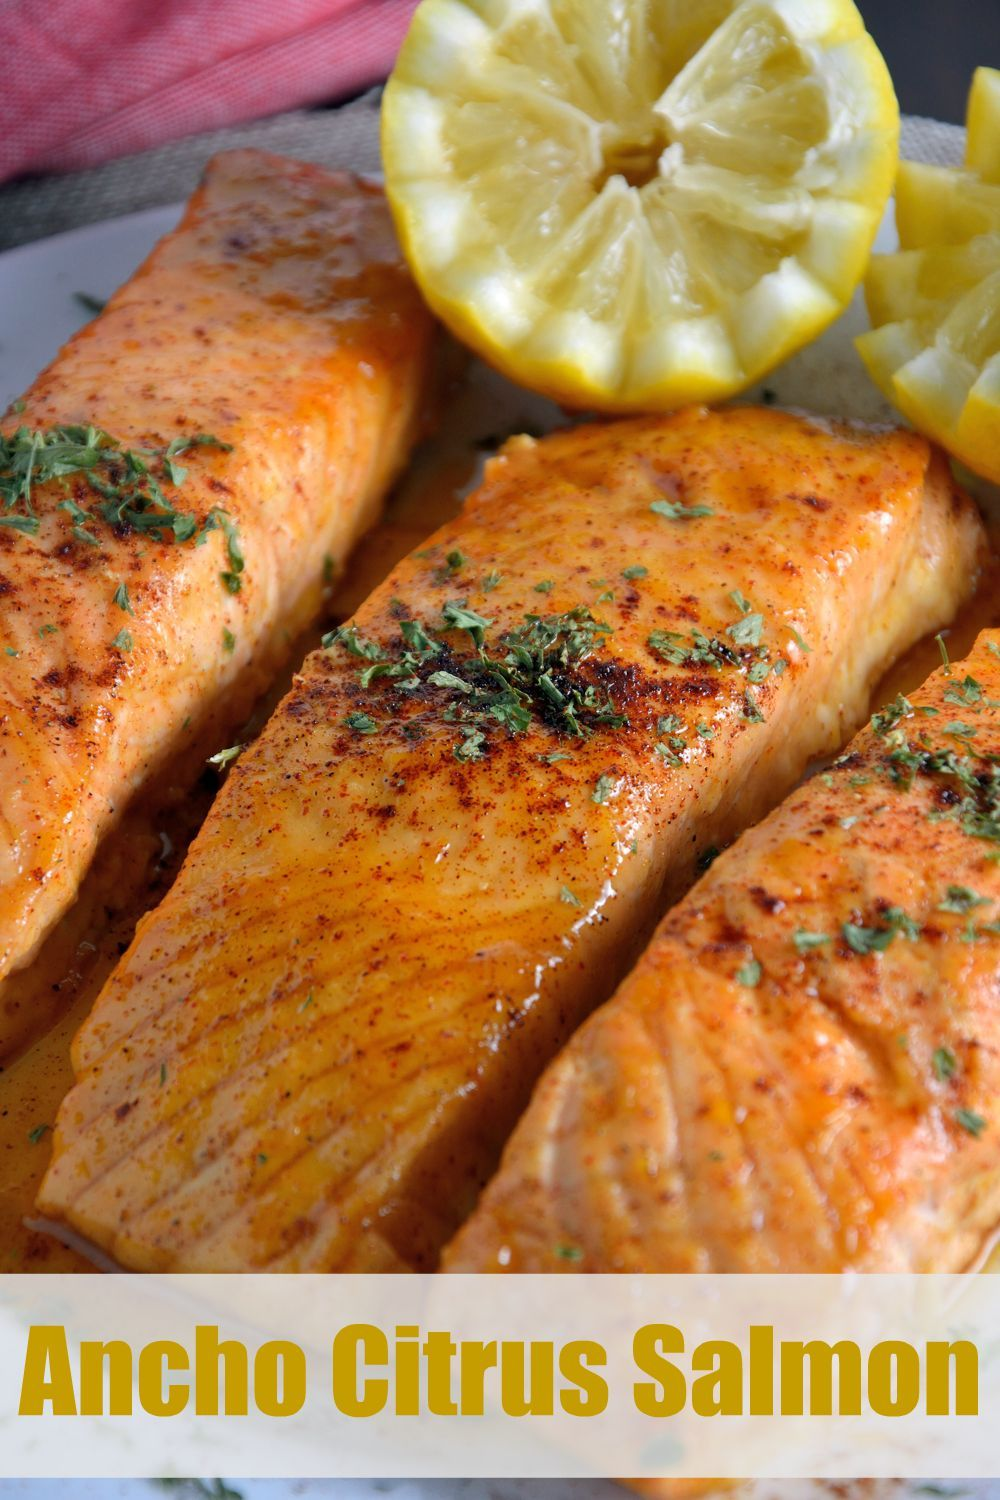 Ancho citrus salmon recipe healthy salmon recipe that uses orange ancho citrus salmon recipe healthy salmon recipe that uses orange juice as the base and gets a little kick from ancho chile this easy baked salmon can be forumfinder Gallery